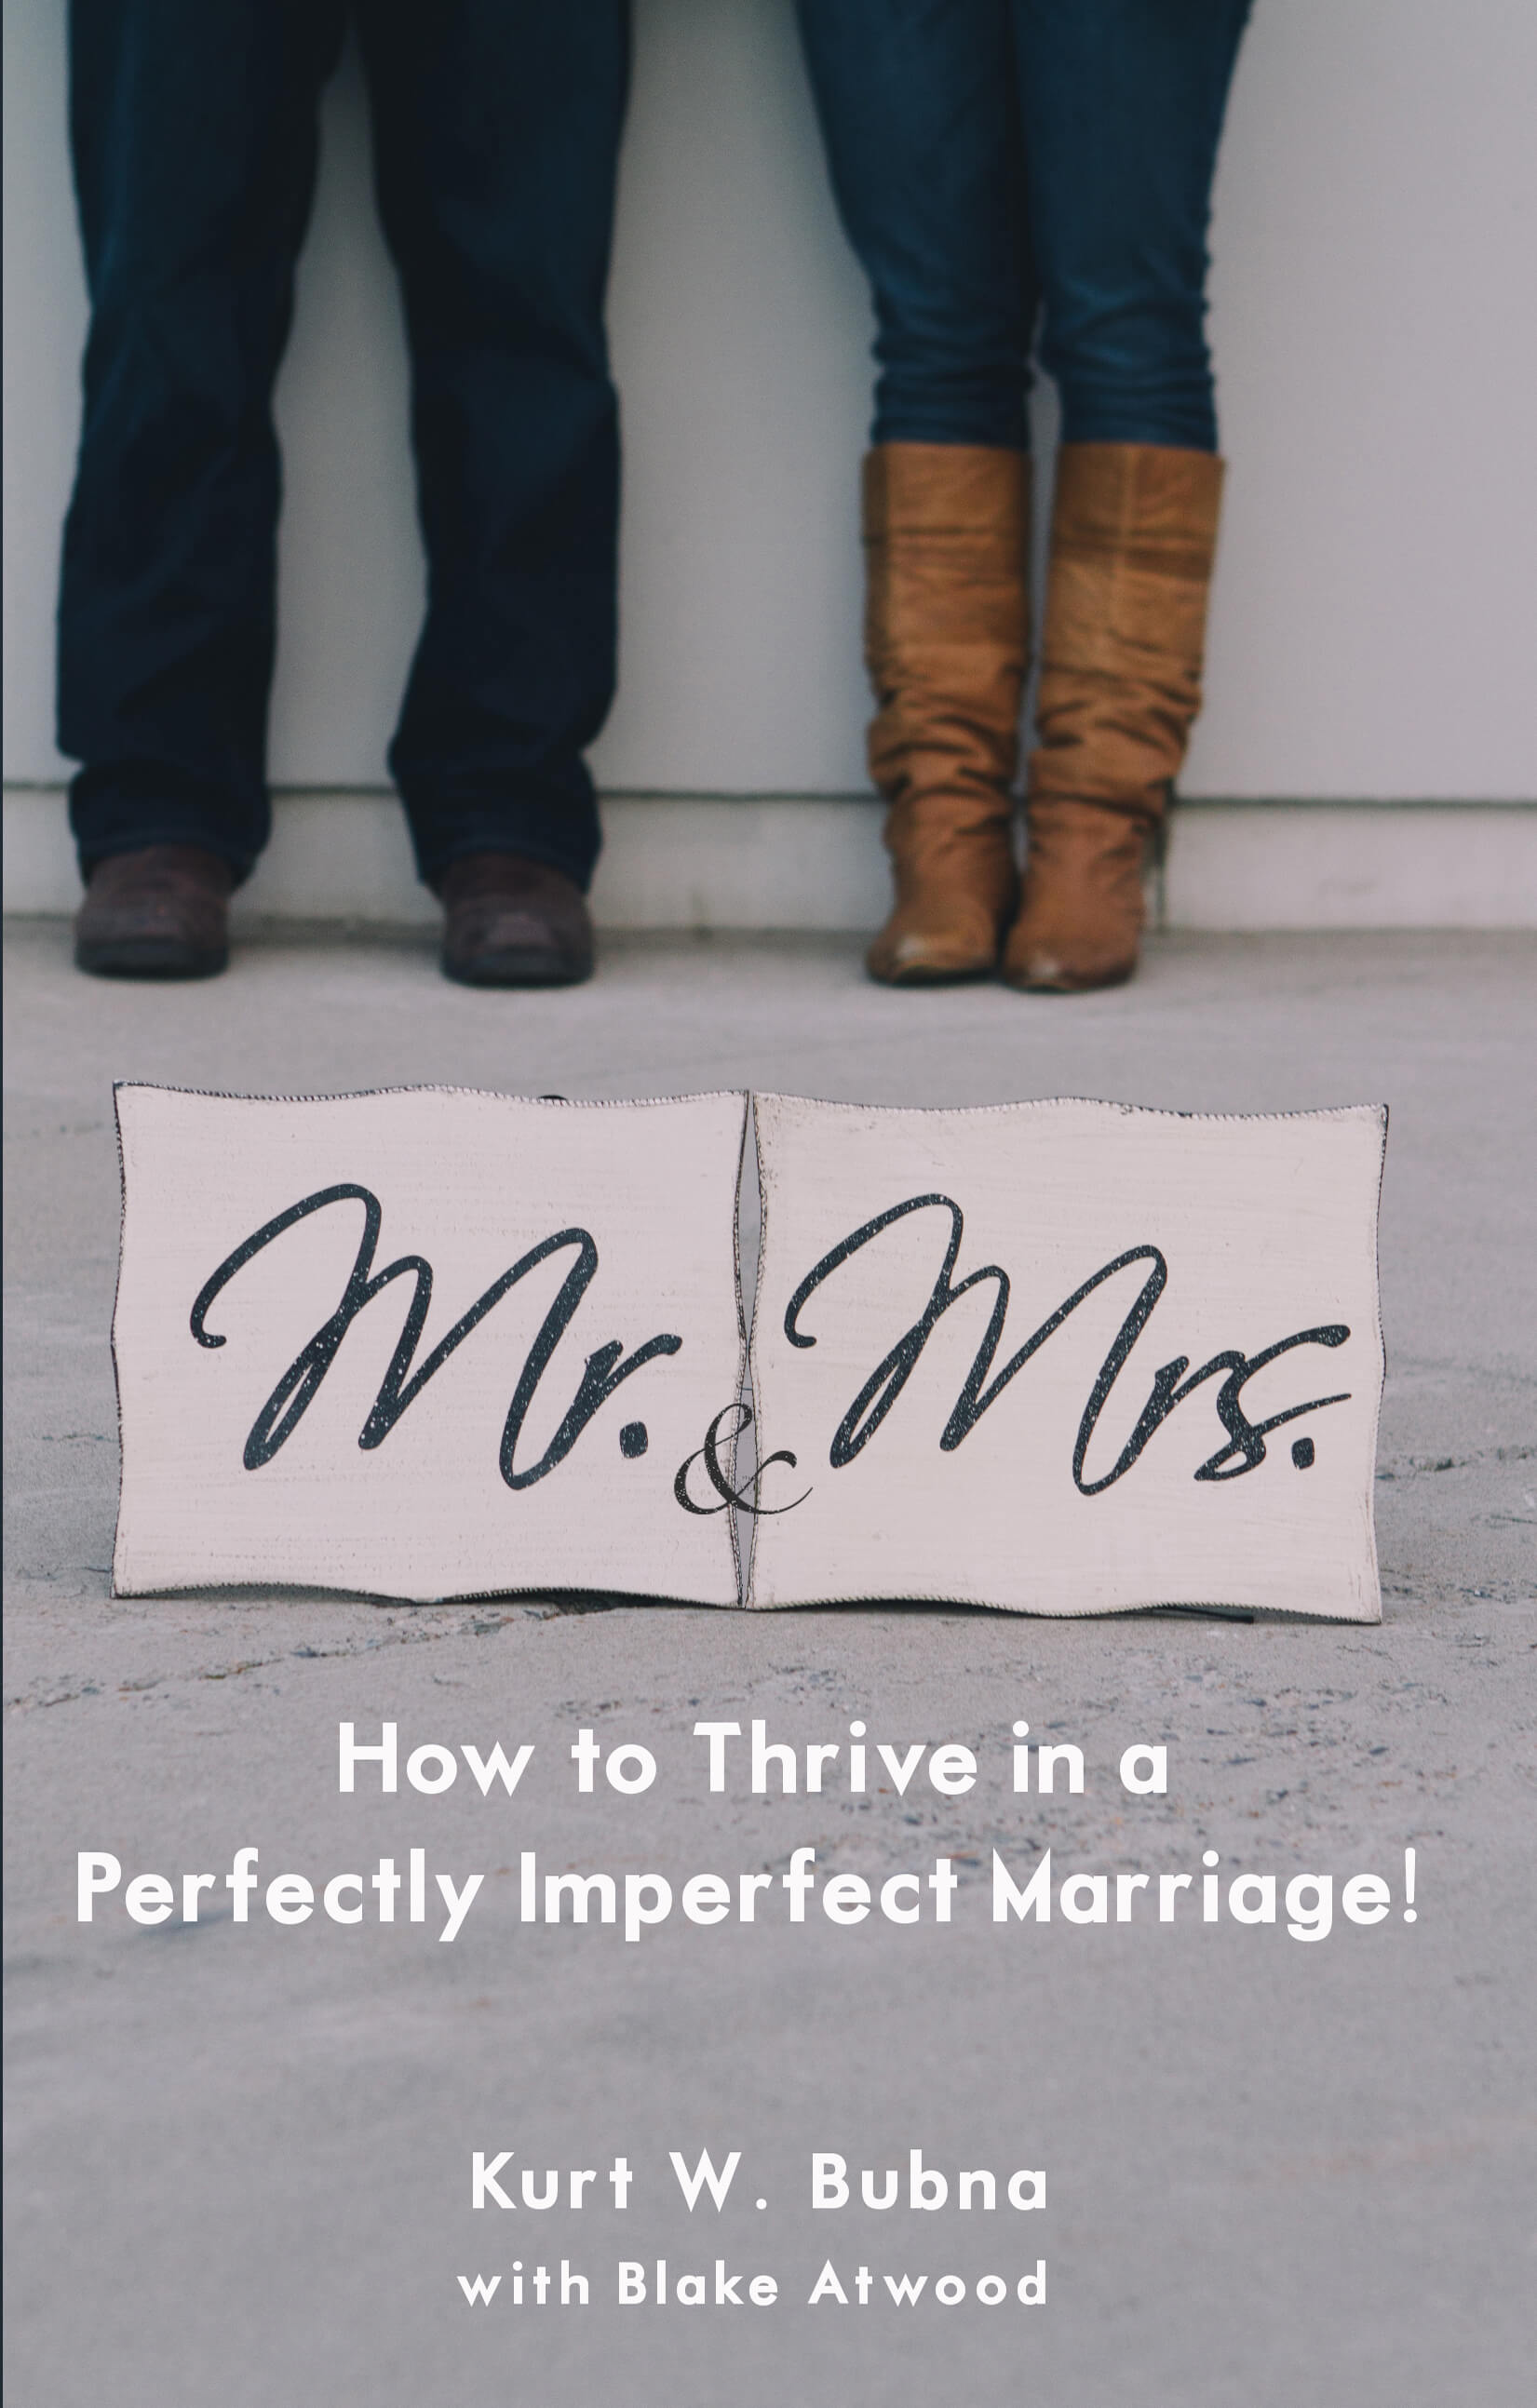 How to Thrive in a Perfectly Imperfect Marriage